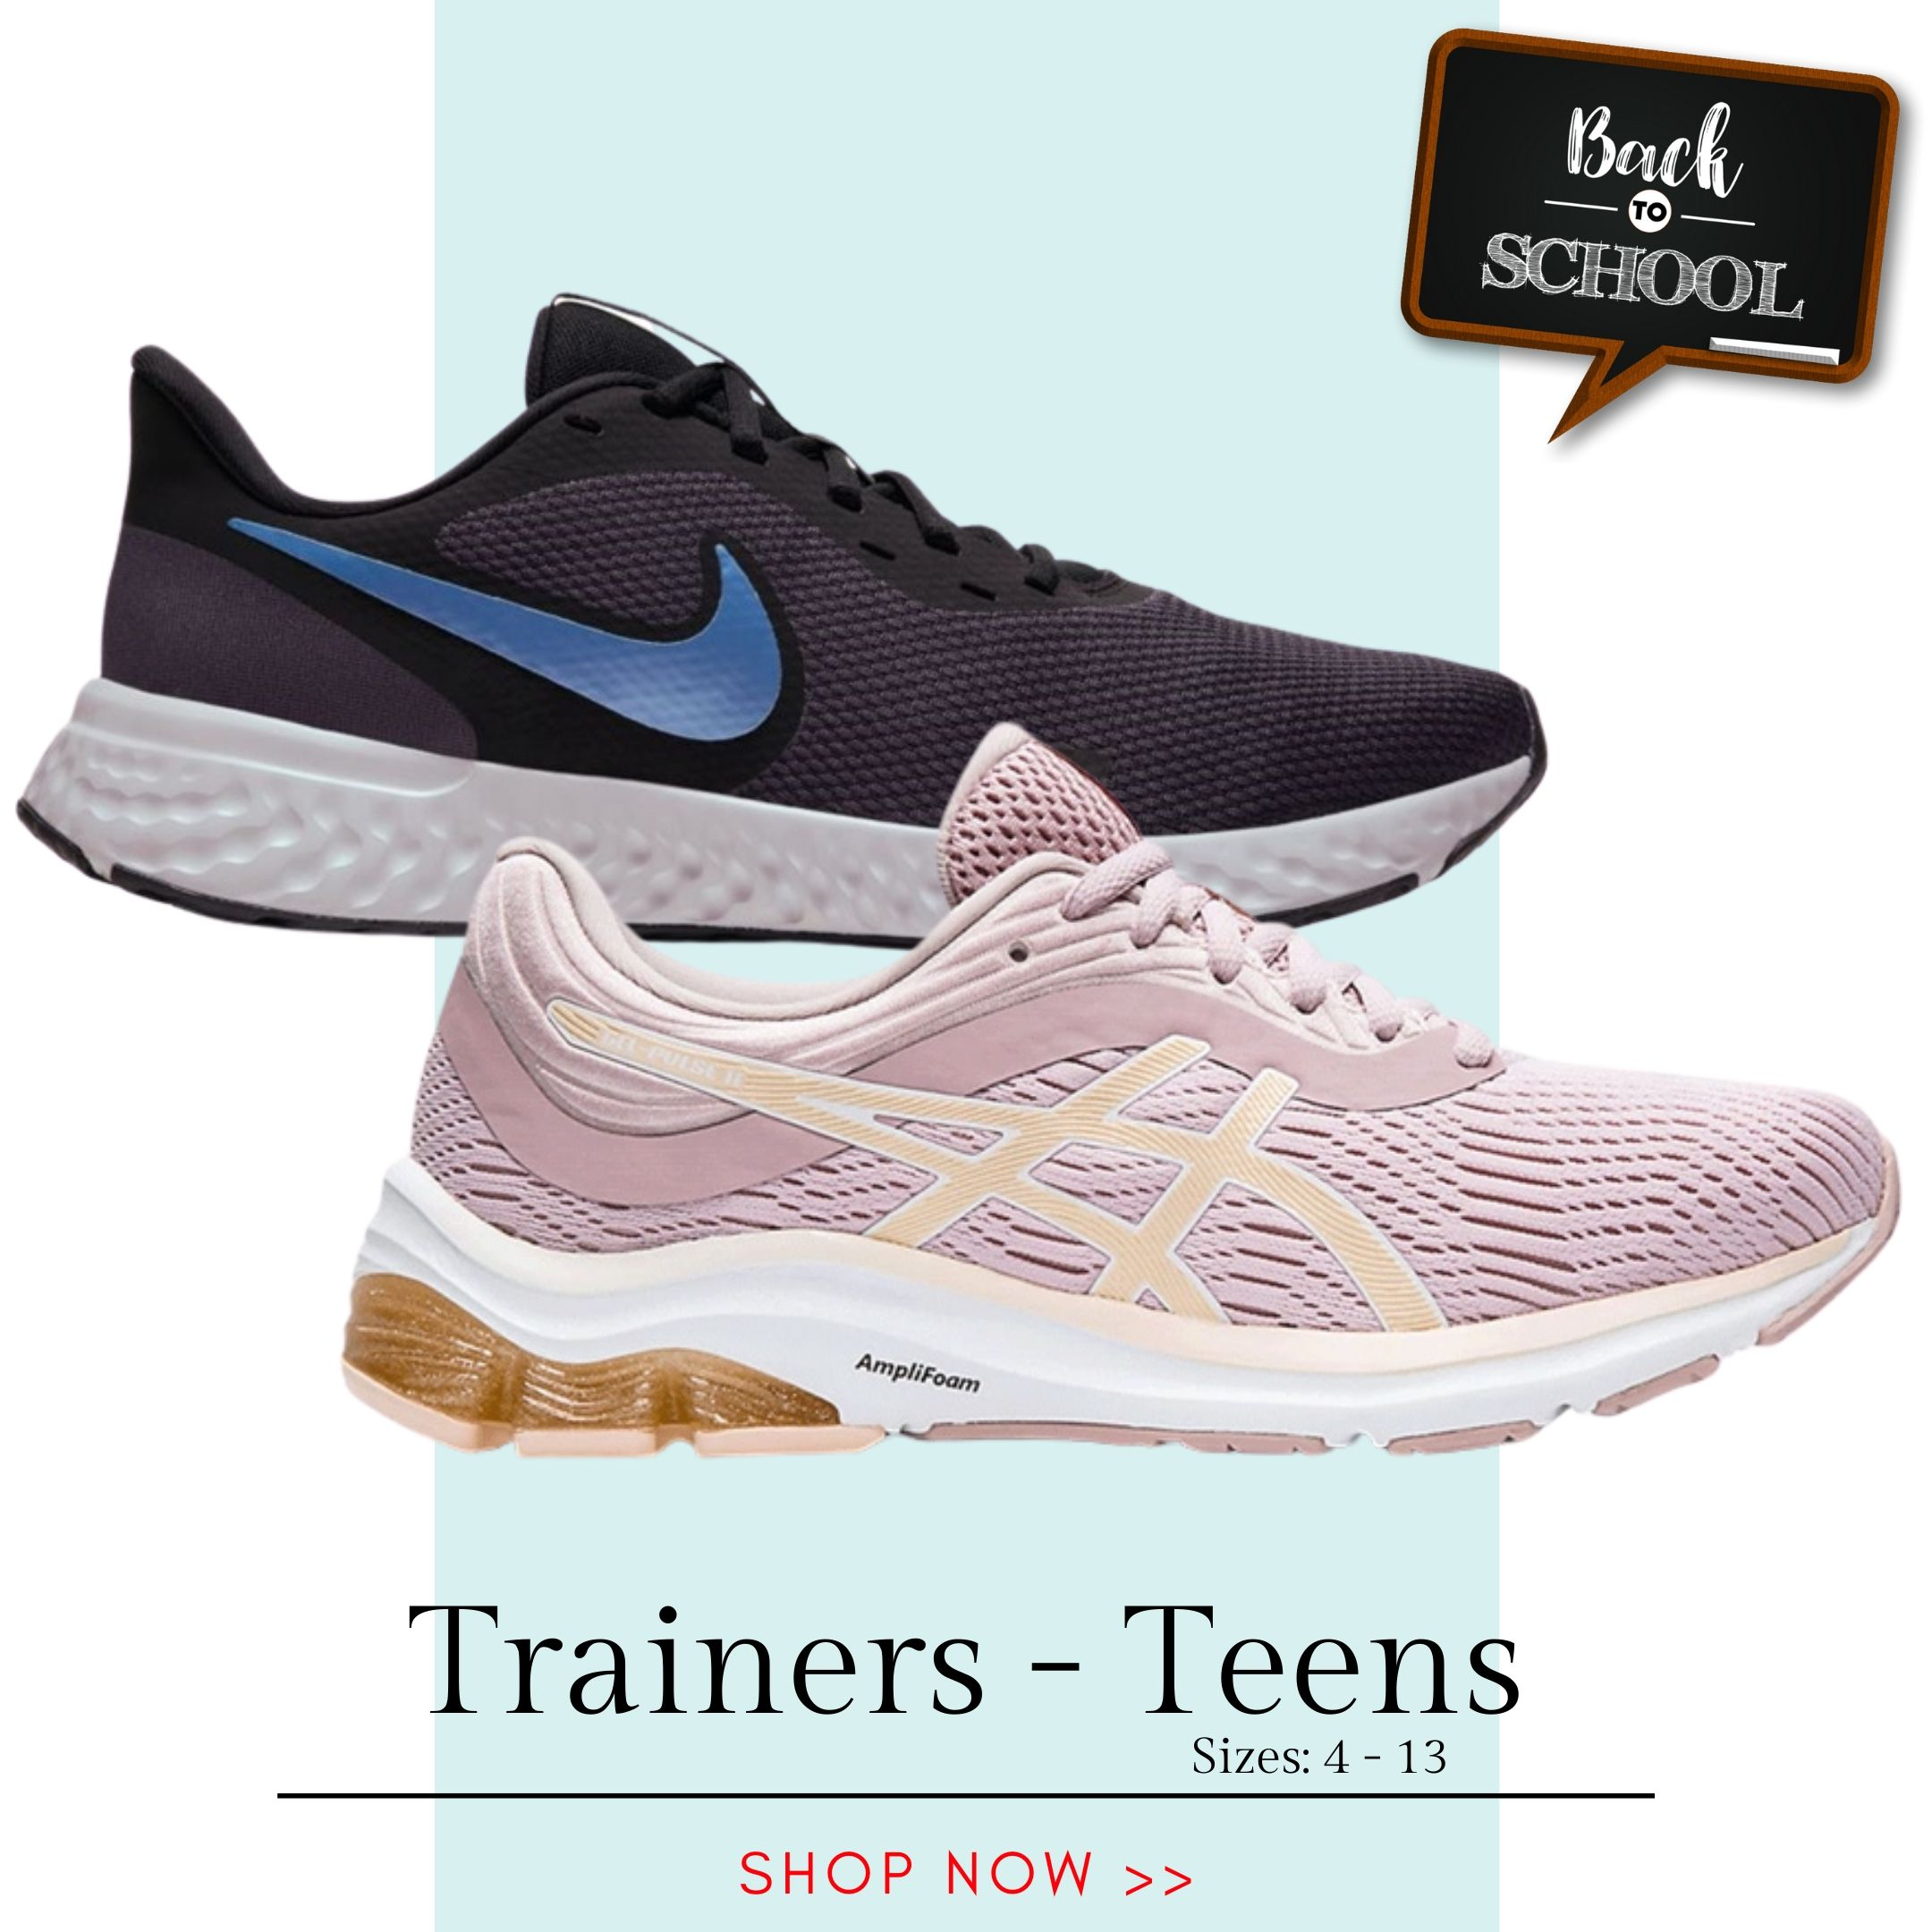 Back to School - Trainers Teens